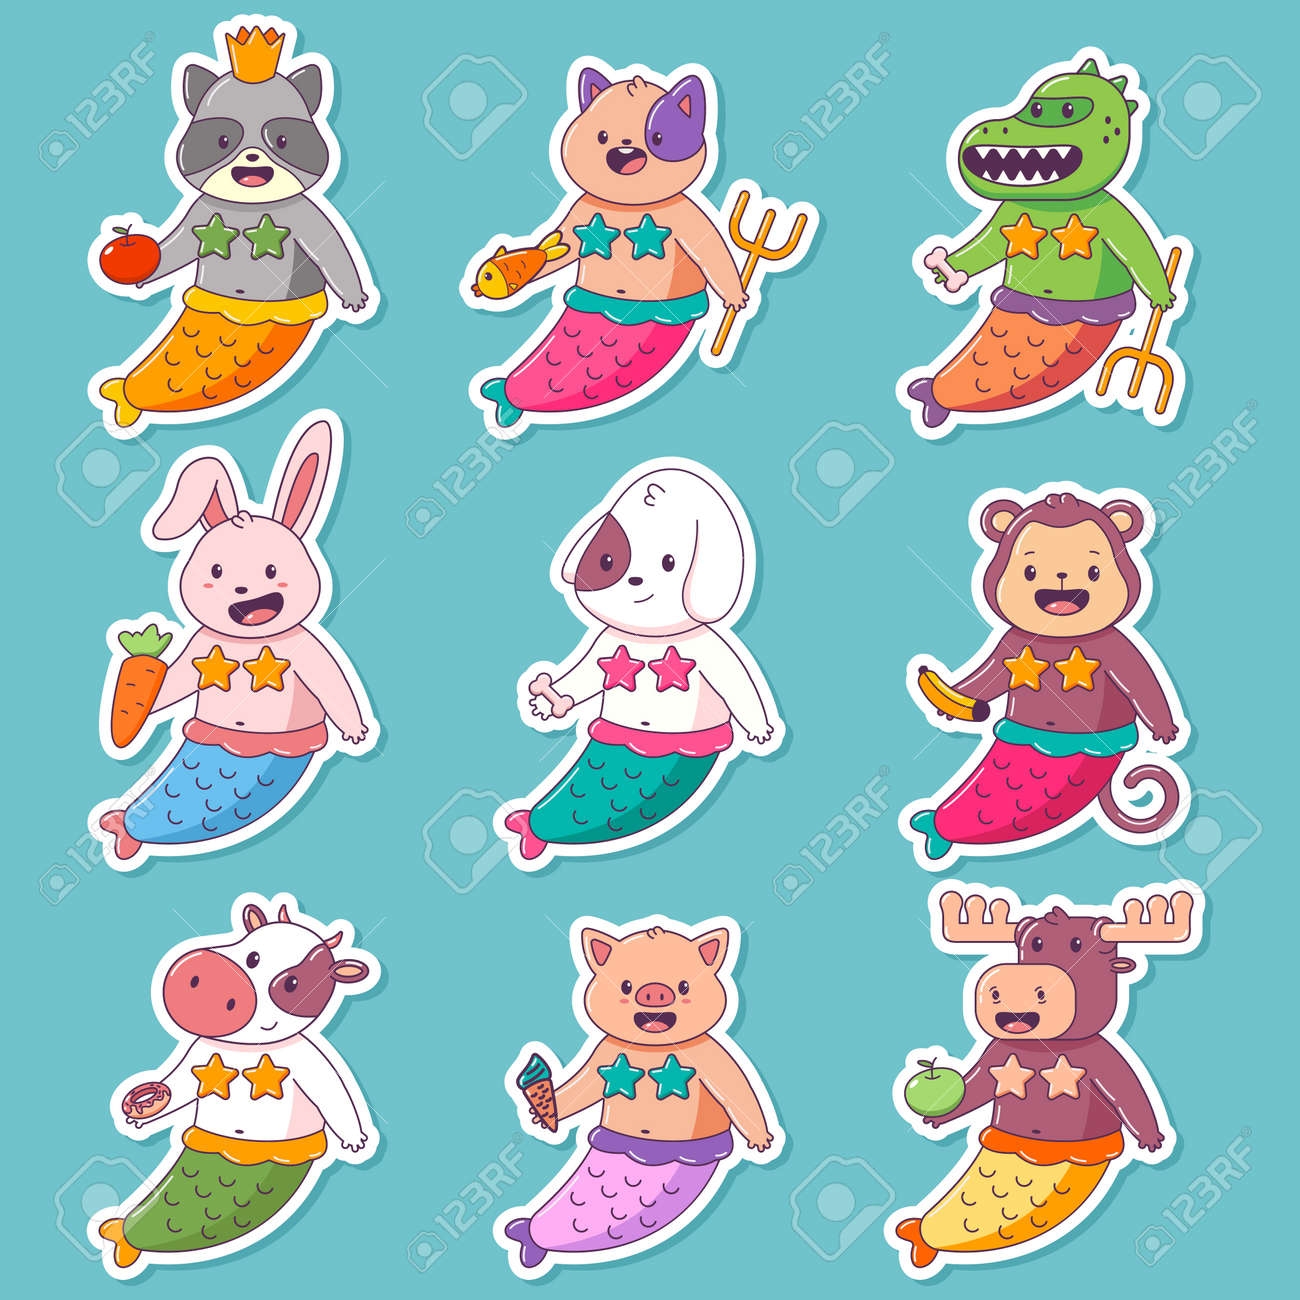 Cute mermaid child animal vector cartoon character set isolated on a white background. - 170637471